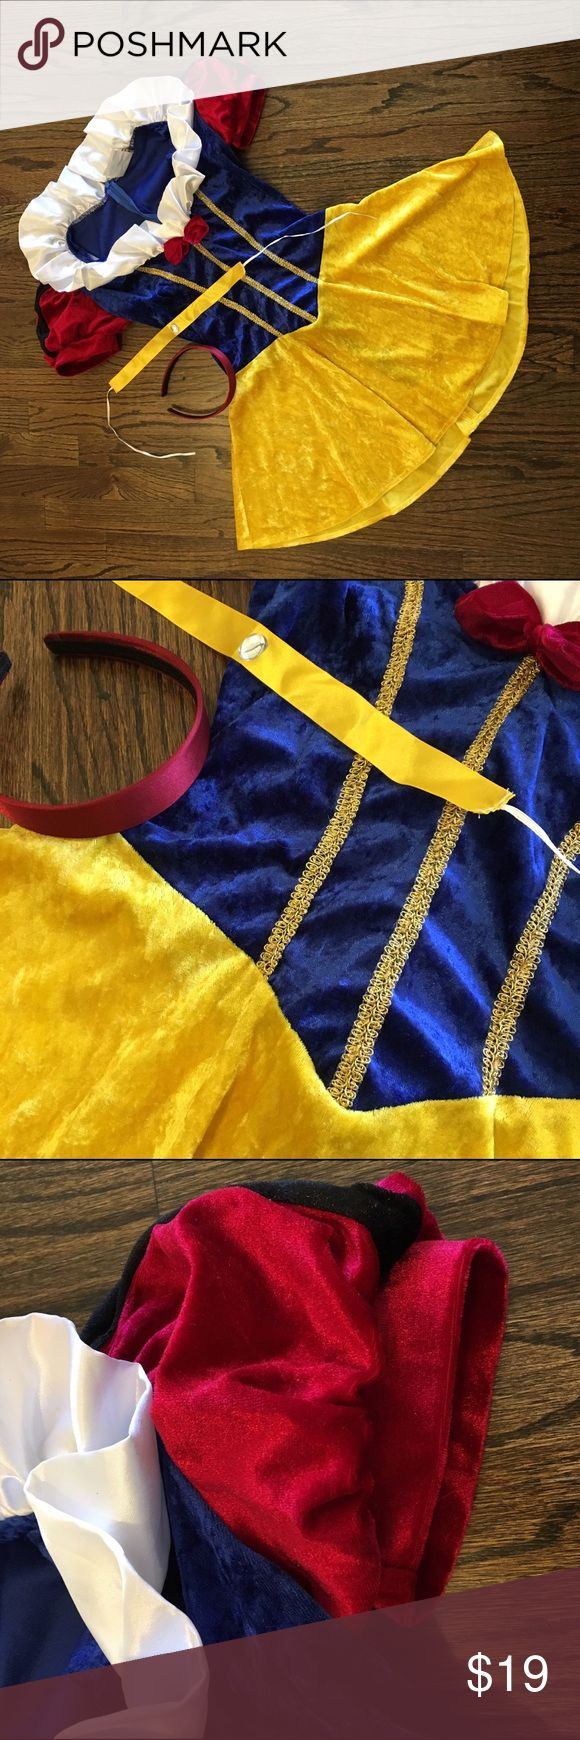 Women's small Snow White costume with accessories Adults small sexy snow white Halloween costume with yellow choker and red satin headband. Other